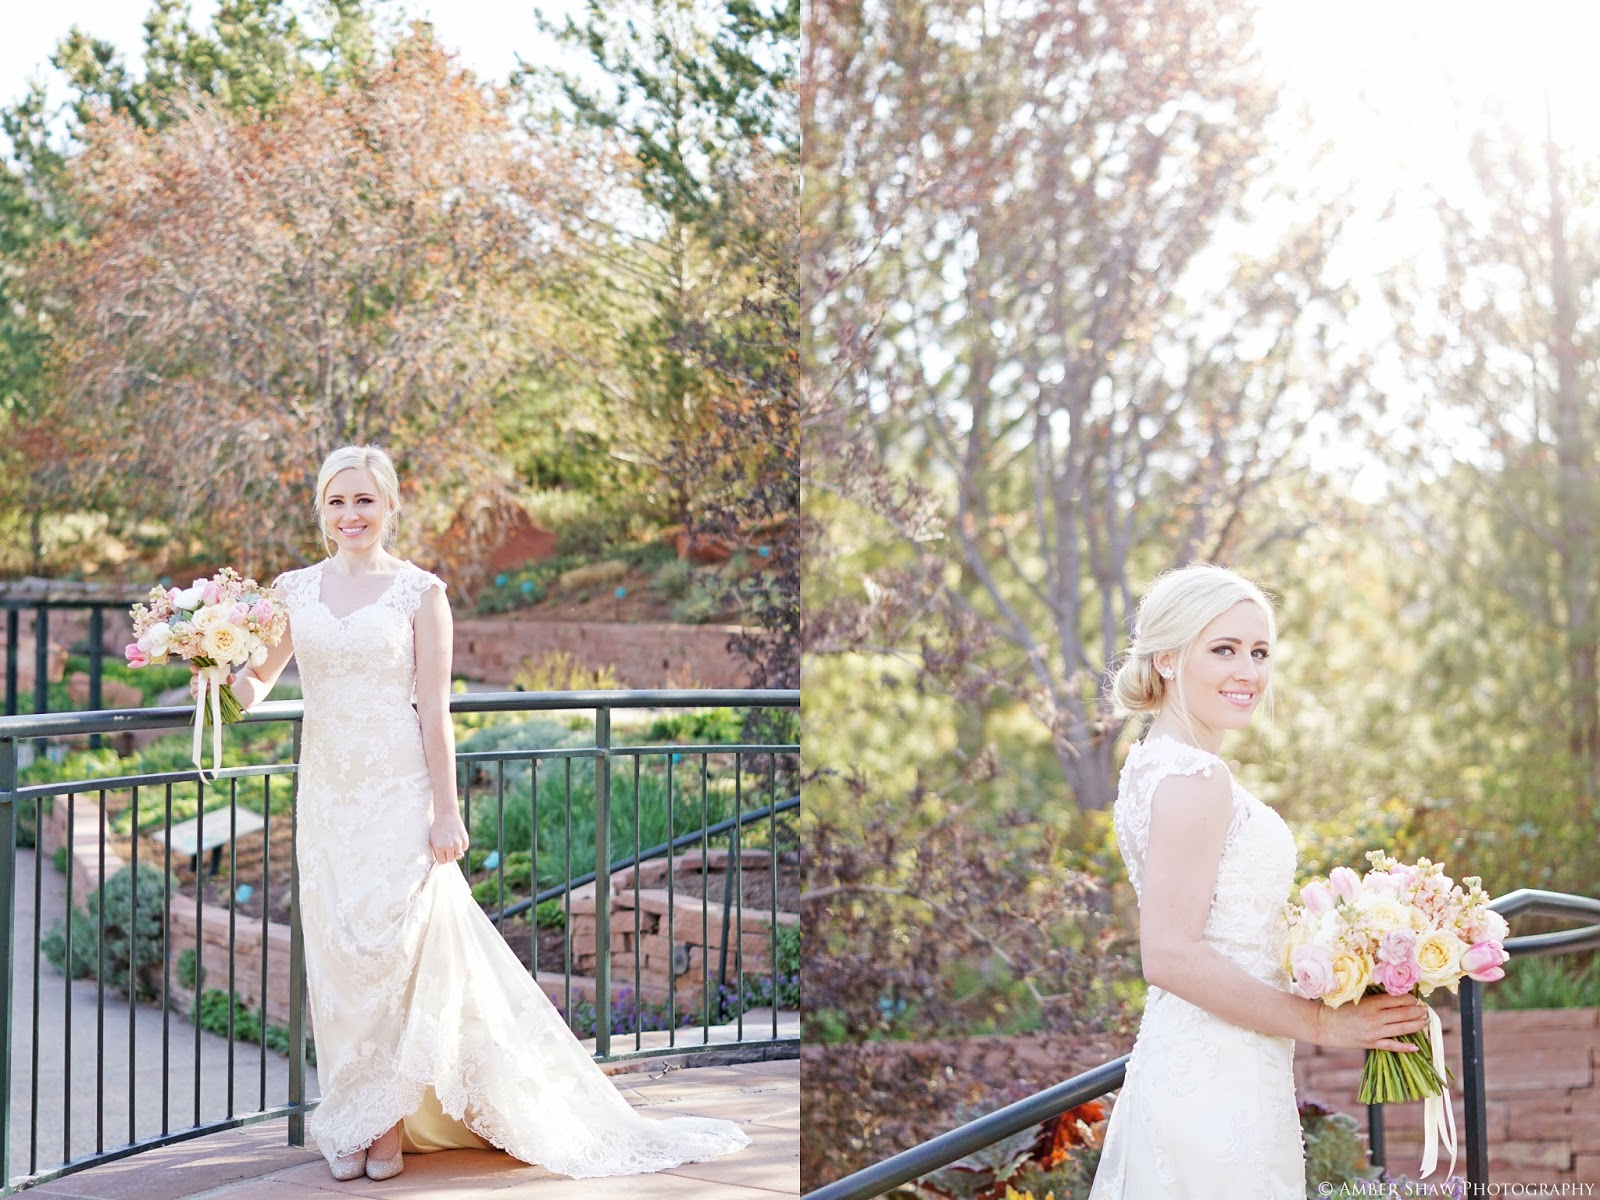 The dress garden utah - She Is Stinkin Gorgeous And That Dress That Dress Oh Don T Get Me Started On That Fabulous Maggie Sottero Dress